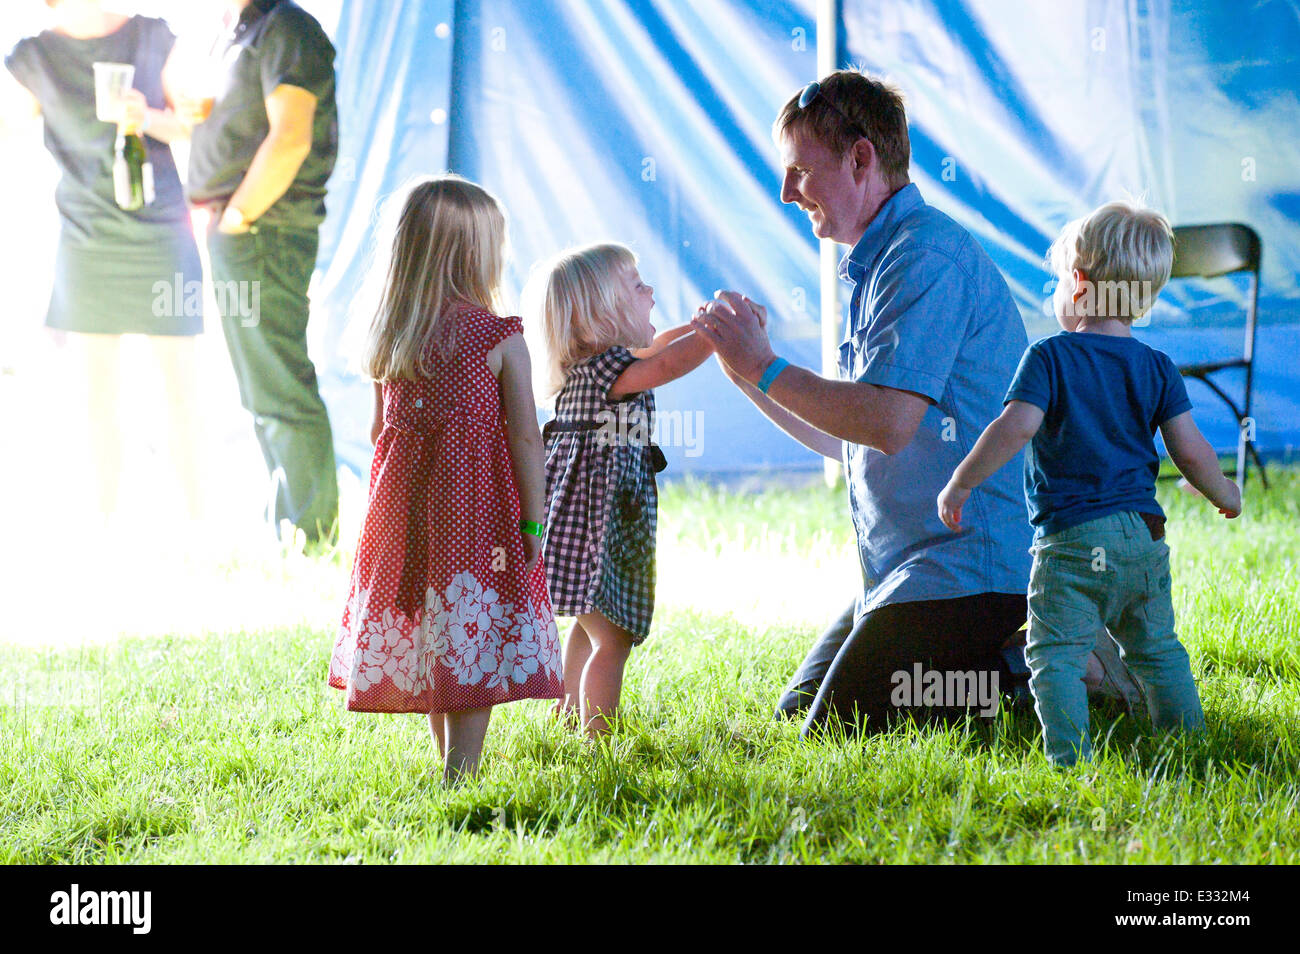 Llandeilo, Carmarthenshire. UK. 21st June,2014. Families enjoy themselves in the cool of The Rhys Stage tent where - Stock Image